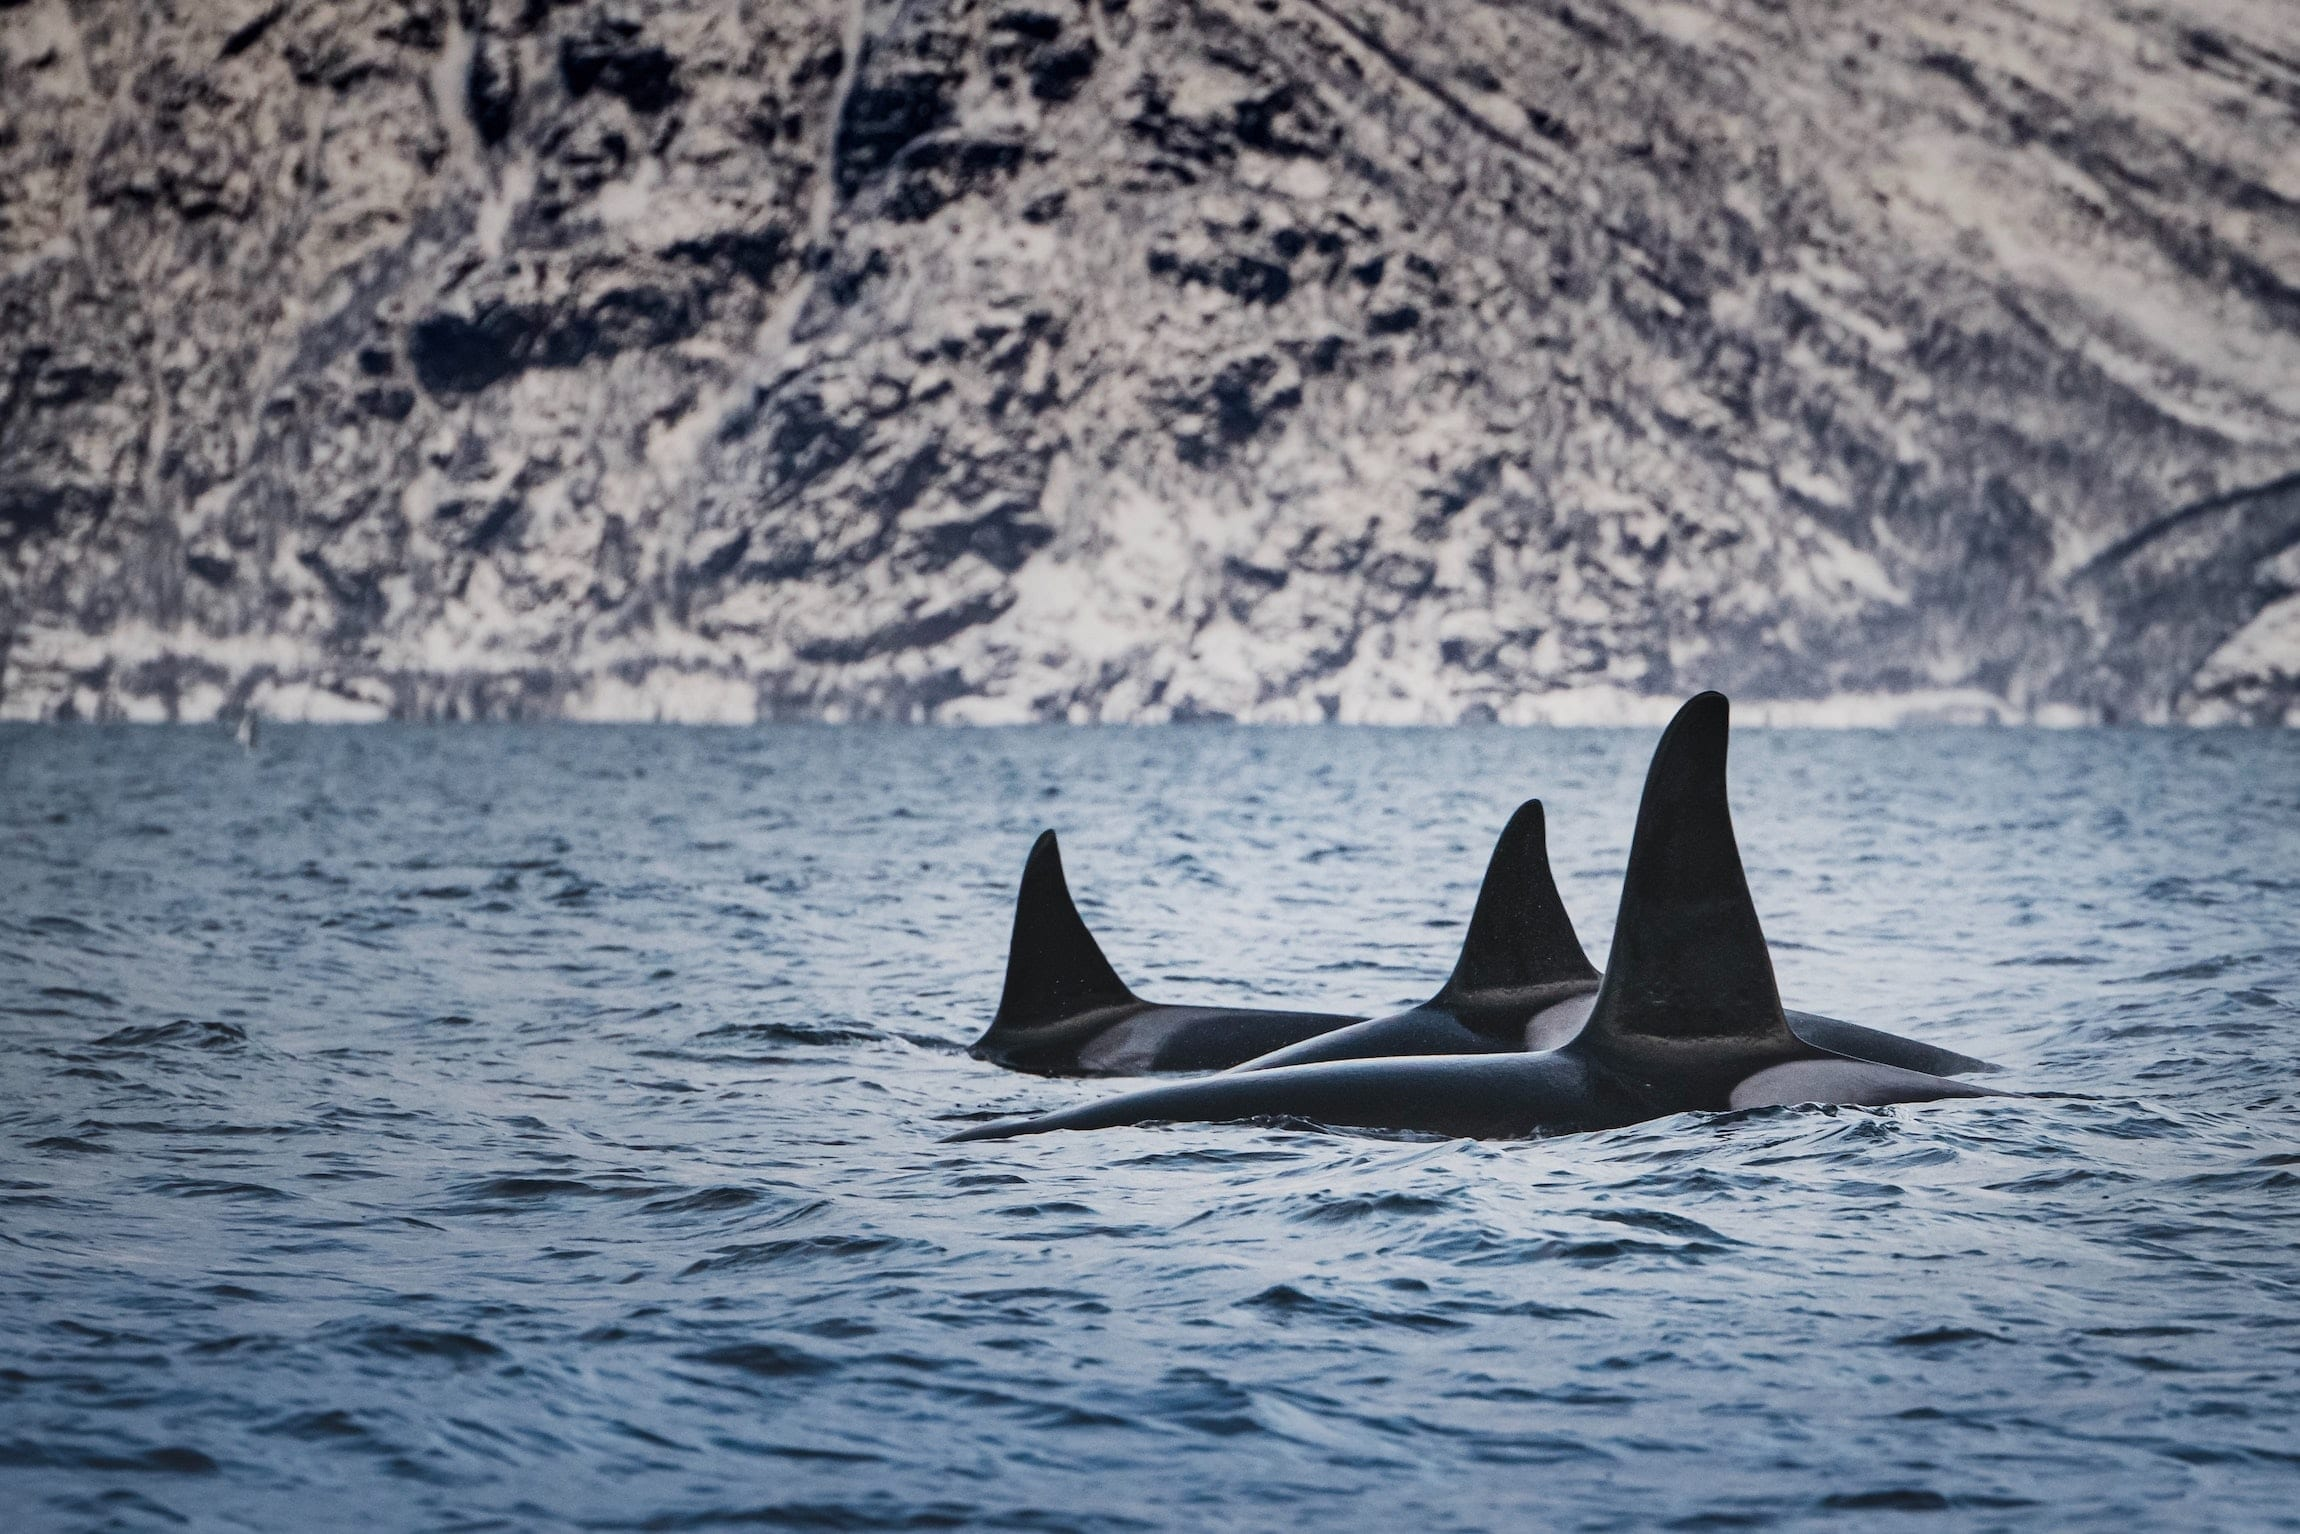 Orcas Swim Together Side By Side in Lofoten Norway